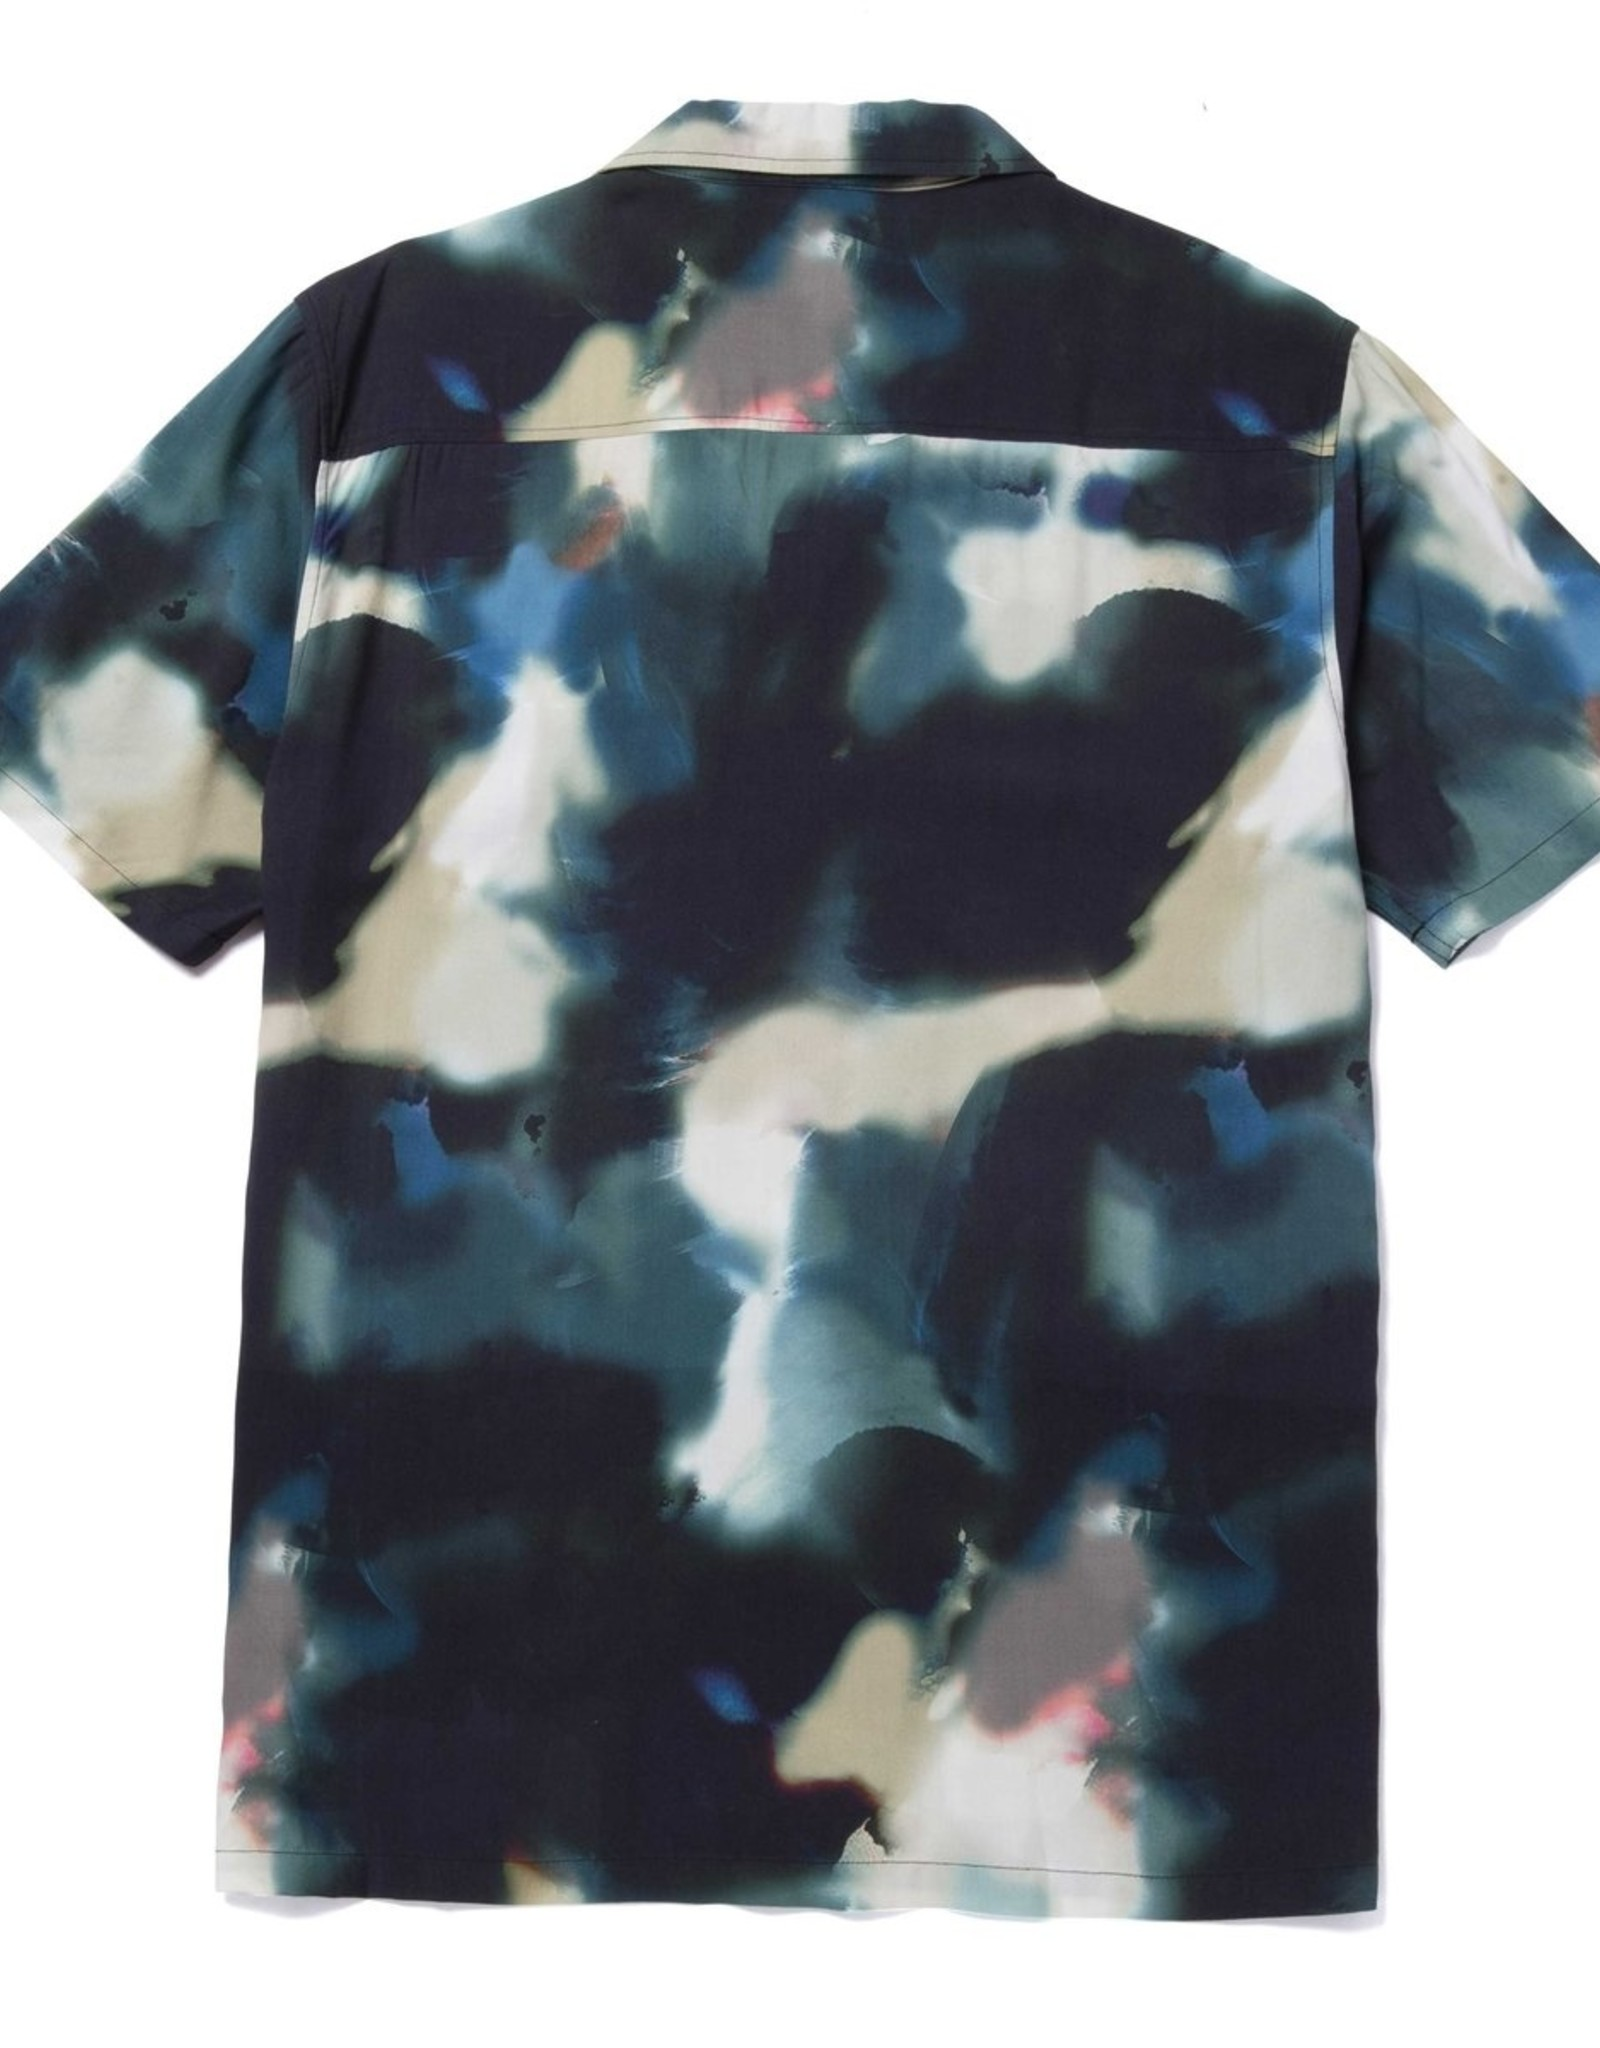 HUF ABSTRACT S/S RESORT TOP - SYCAMORE